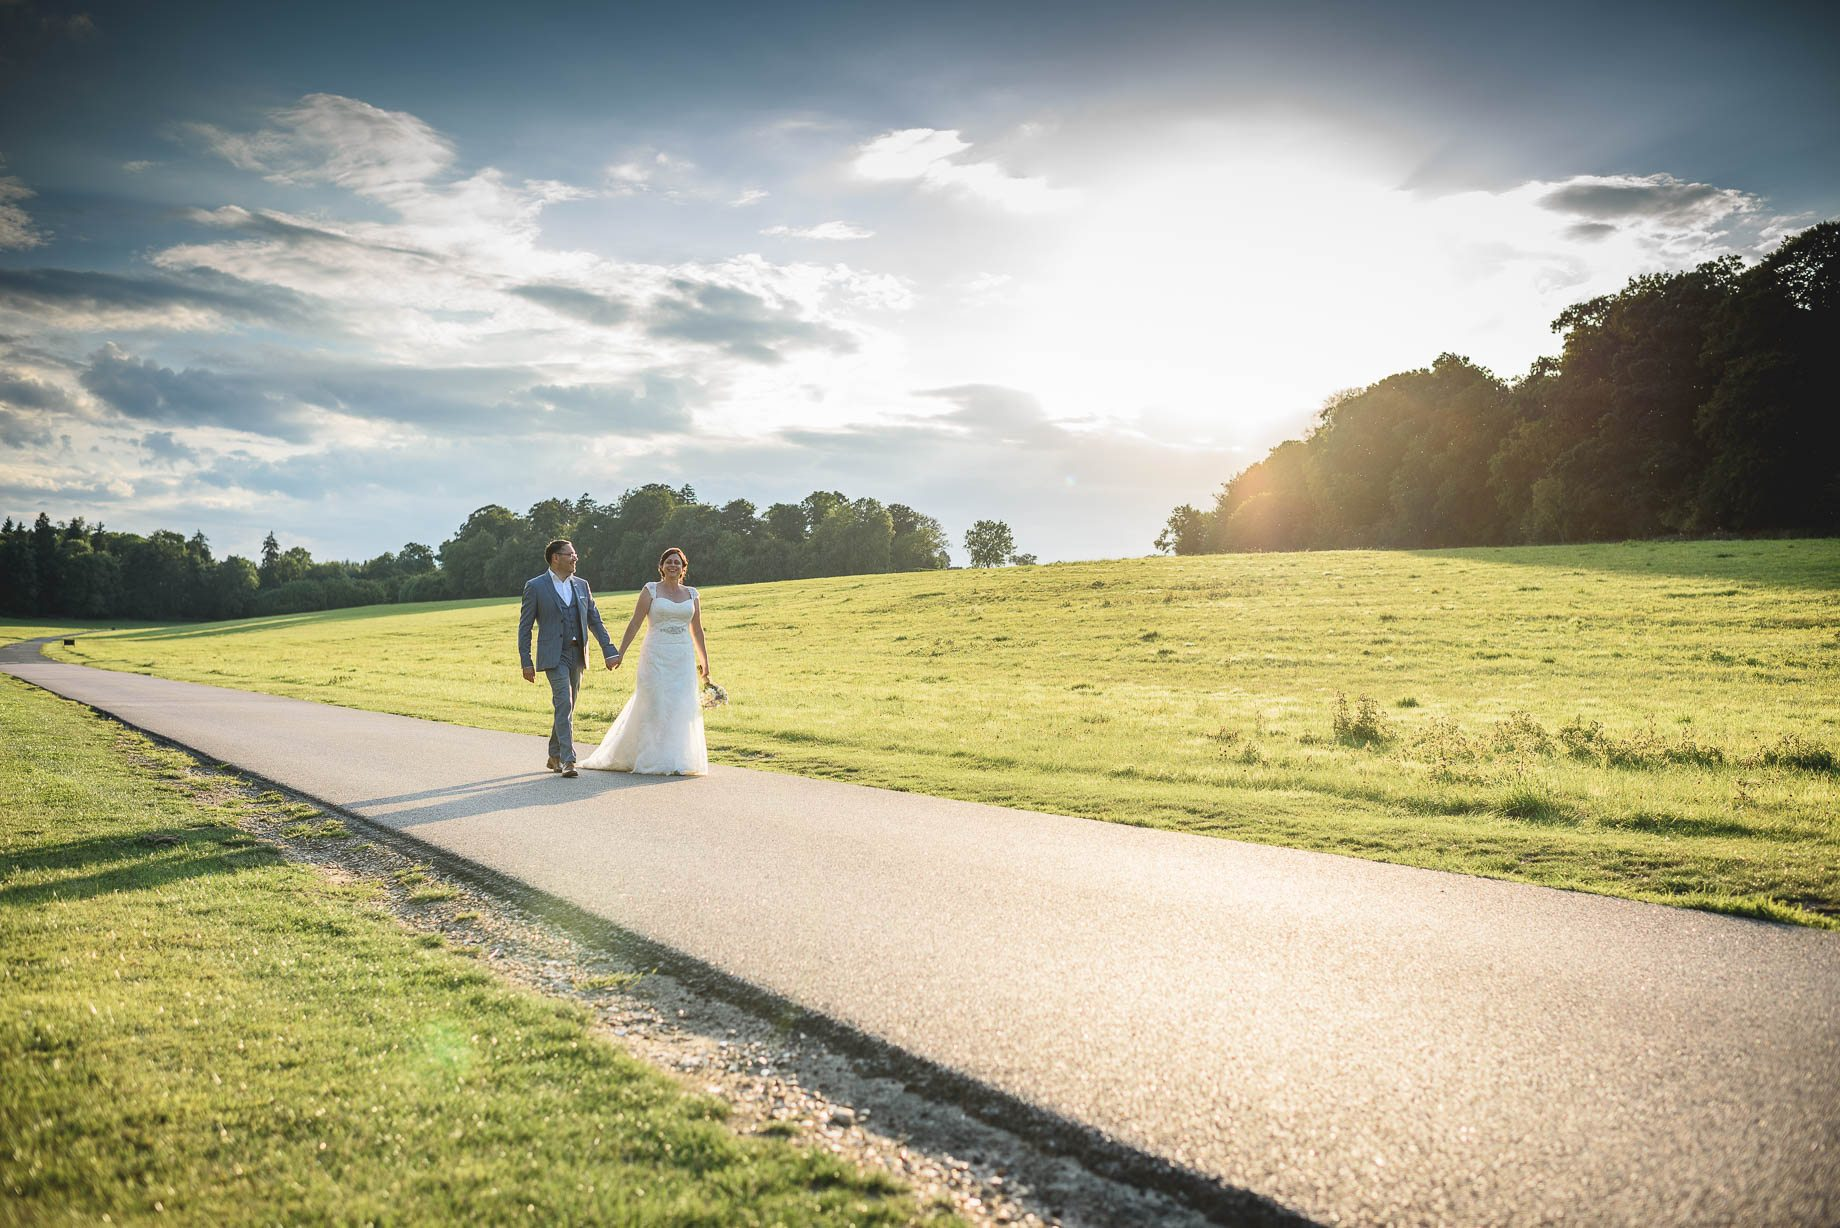 Luton-Hoo-wedding-photography-by-Guy-Collier-Photography-Lauren-and-Gem-152-of-178